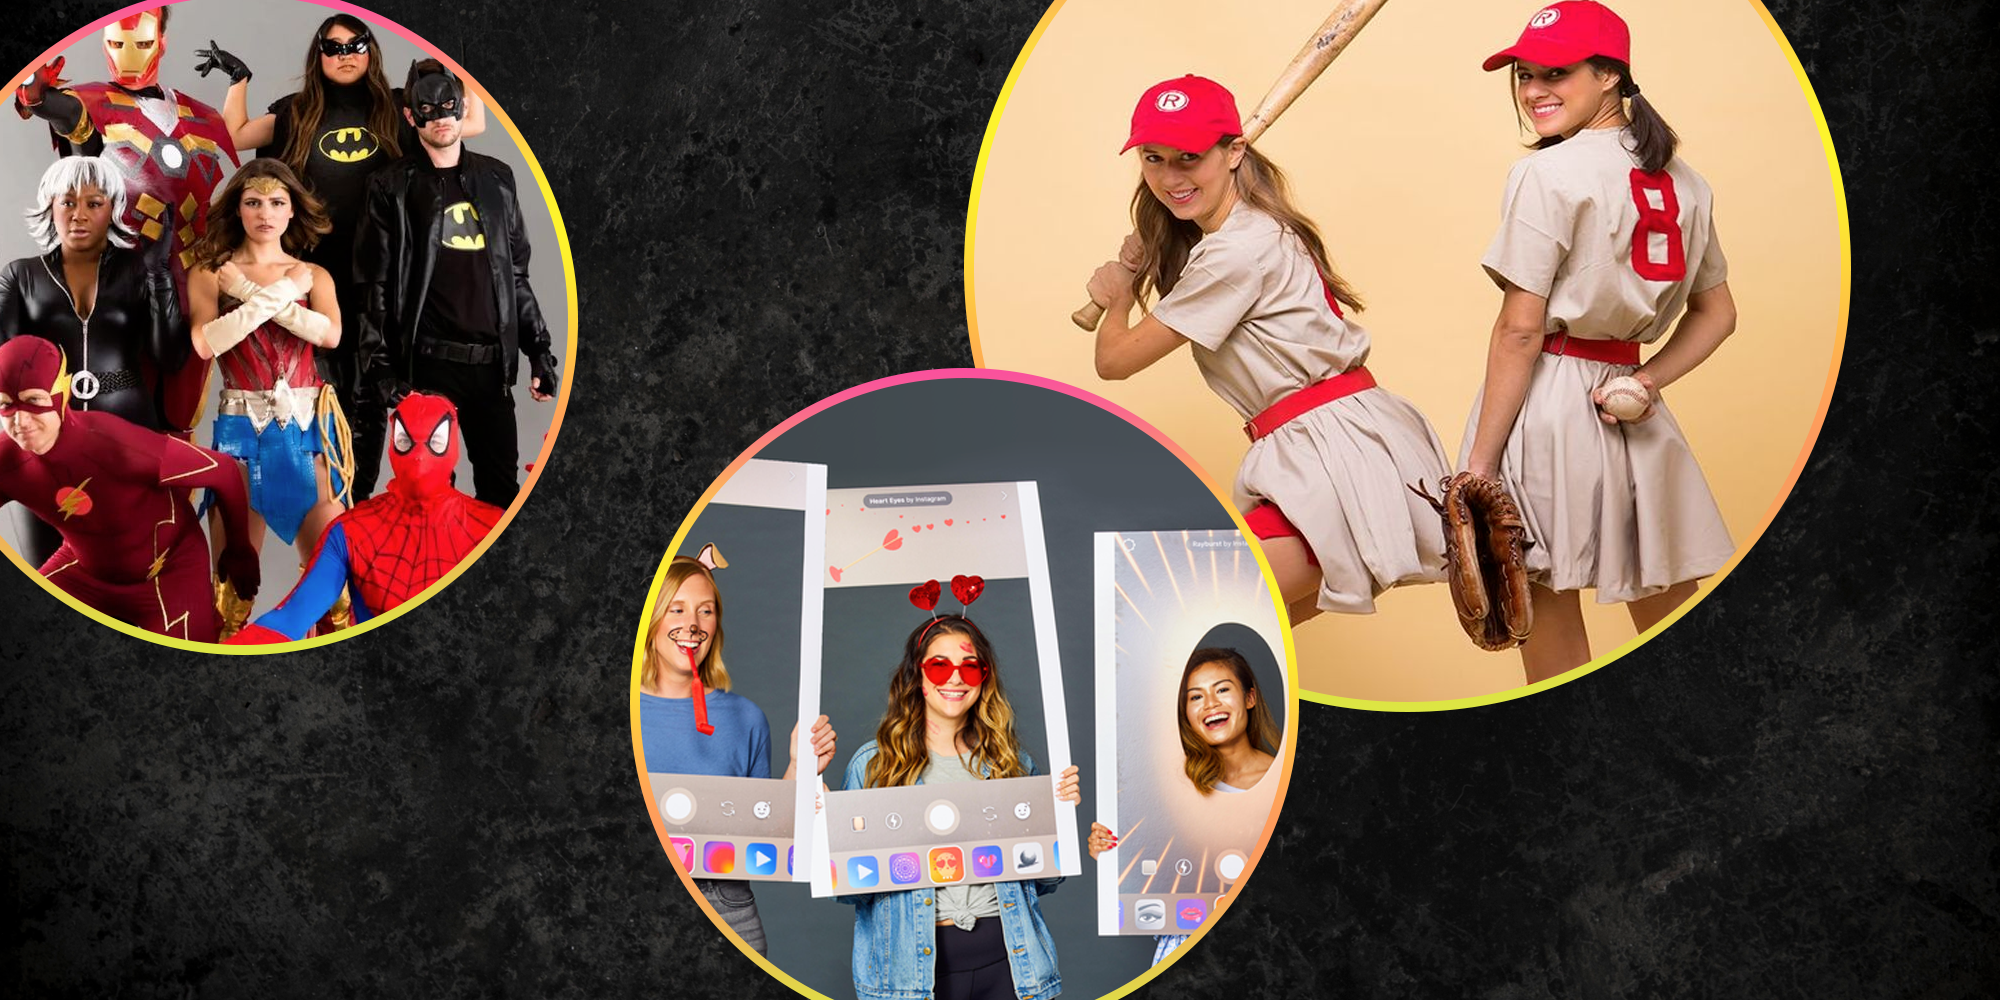 20+ Funny Group Halloween Costumes 2019 - Best Group Costume